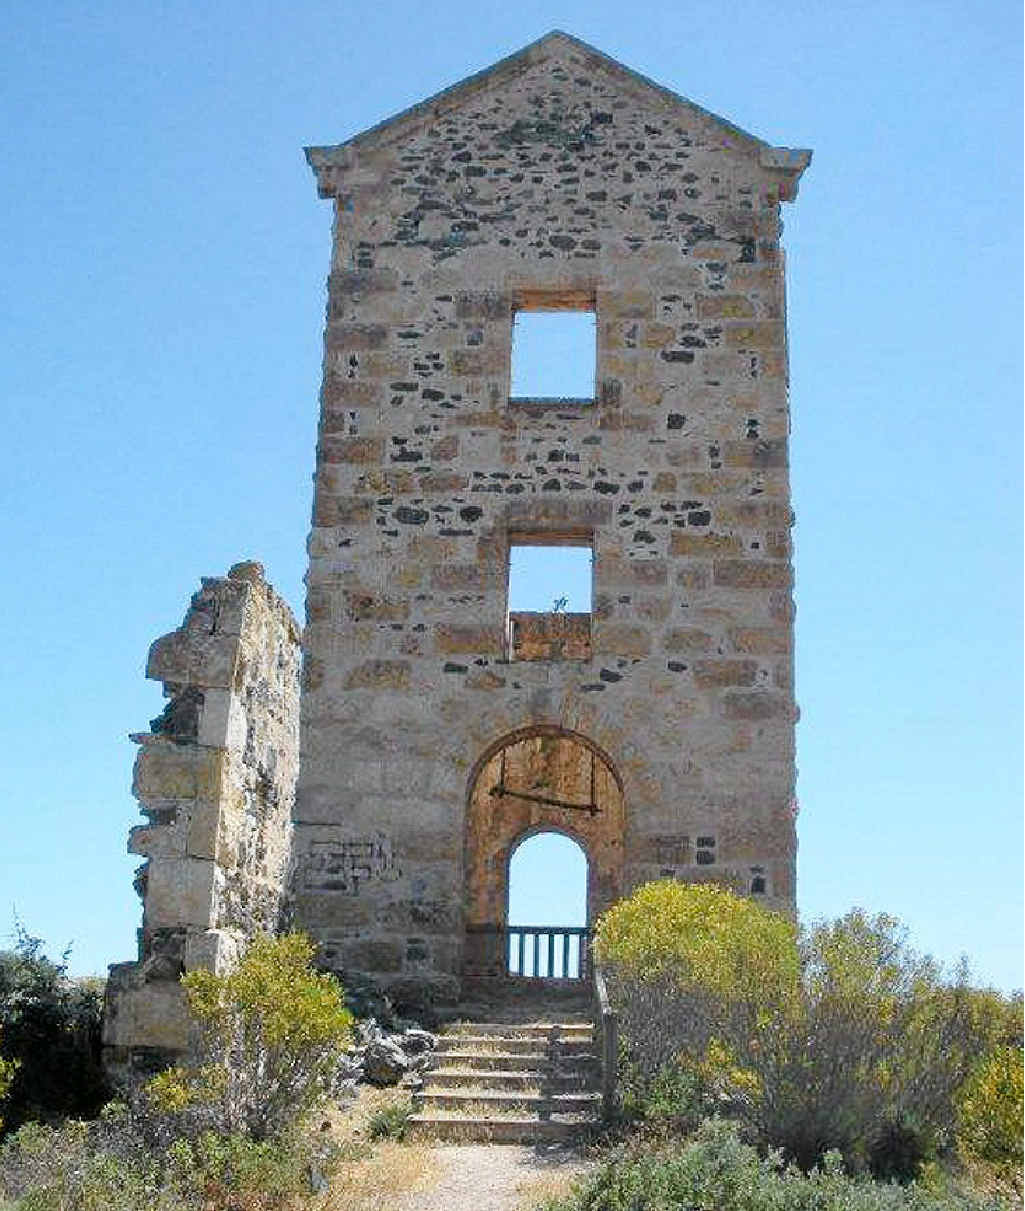 The Wallaroo Mines smelter, which was once a vital part of the town, is today just a majestic, skeletal belltower.